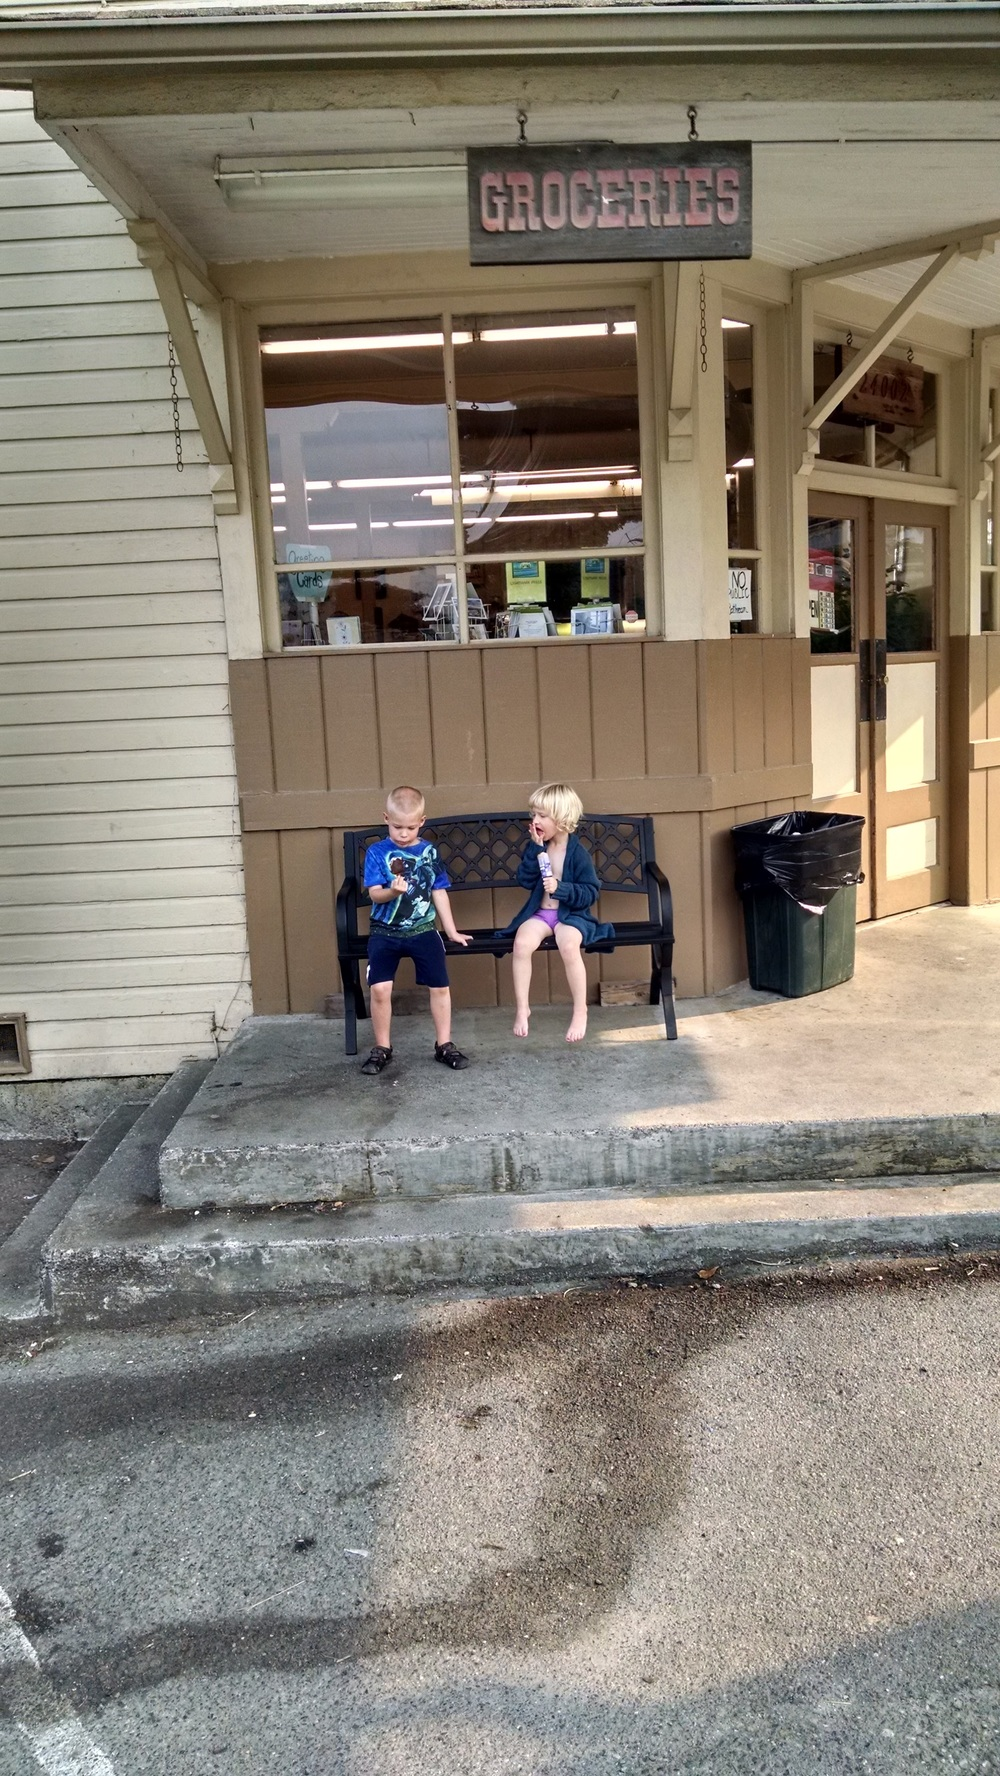 Hannah and Ewan, just chilling outside a general store while we waited for the ferry back to the mainland.